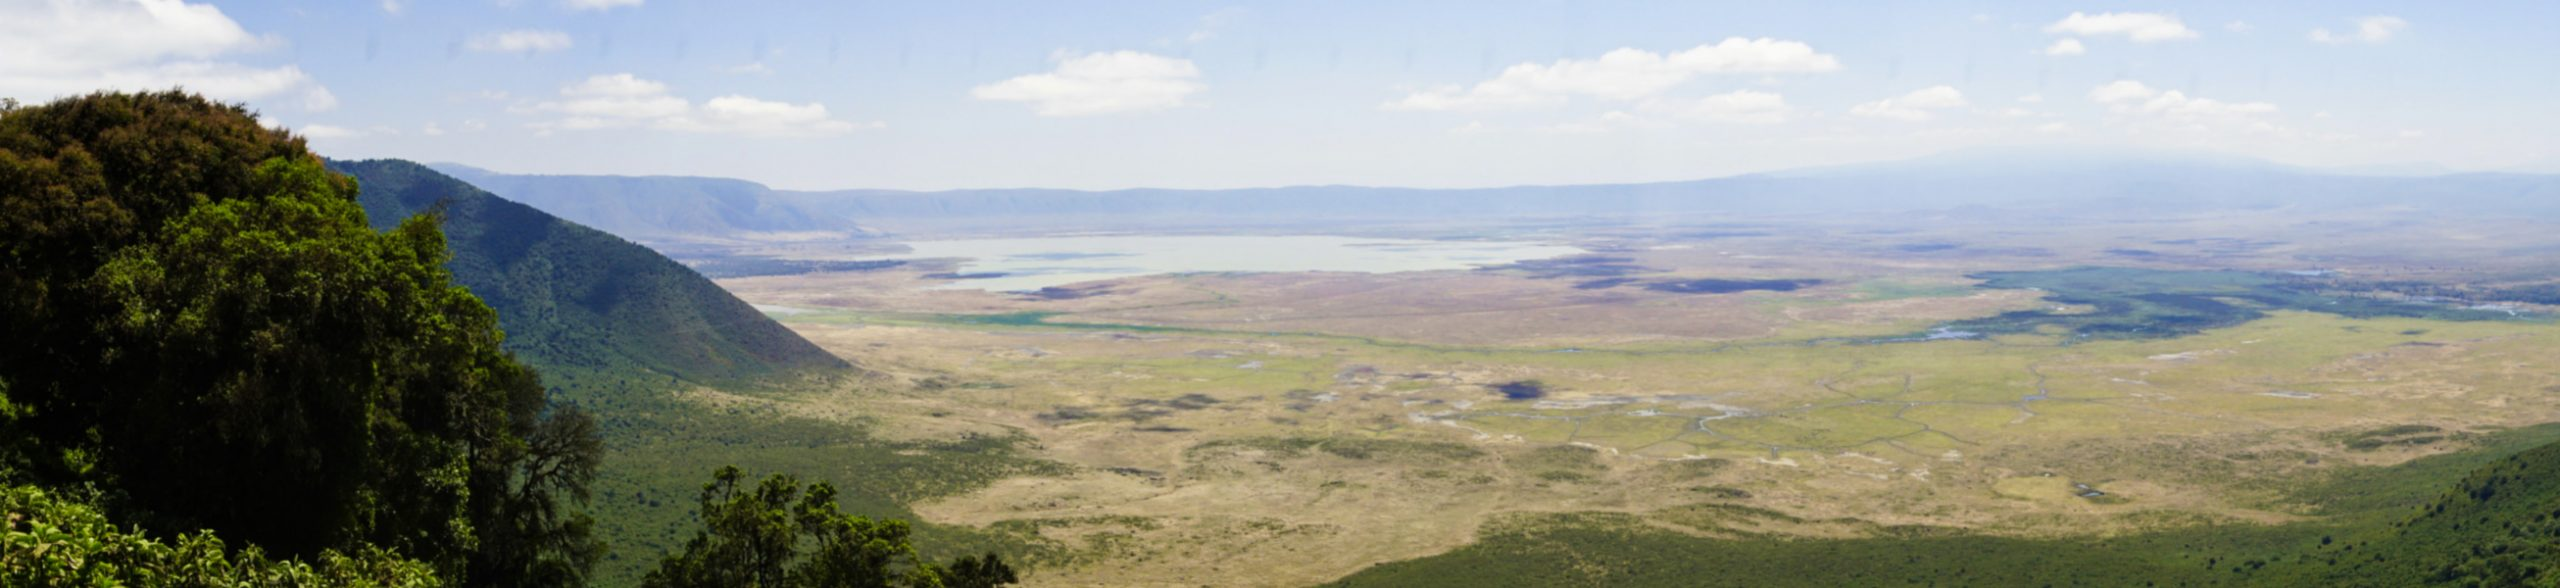 Crater and rim of the Ngorongoro Conservation Area, Tanzania - Experiencing the Globe